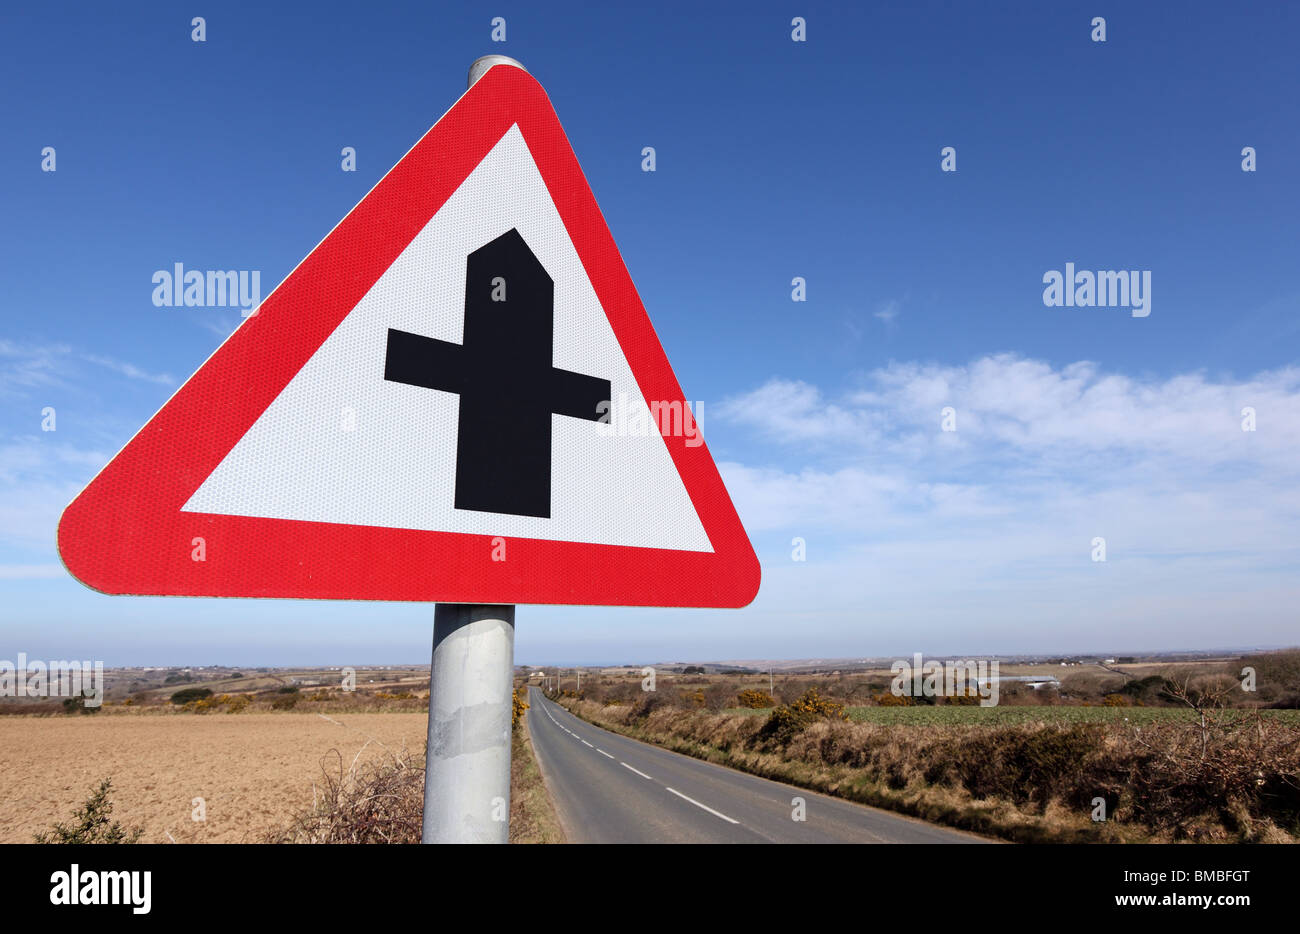 British crossroads ahead road sign warning. - Stock Image